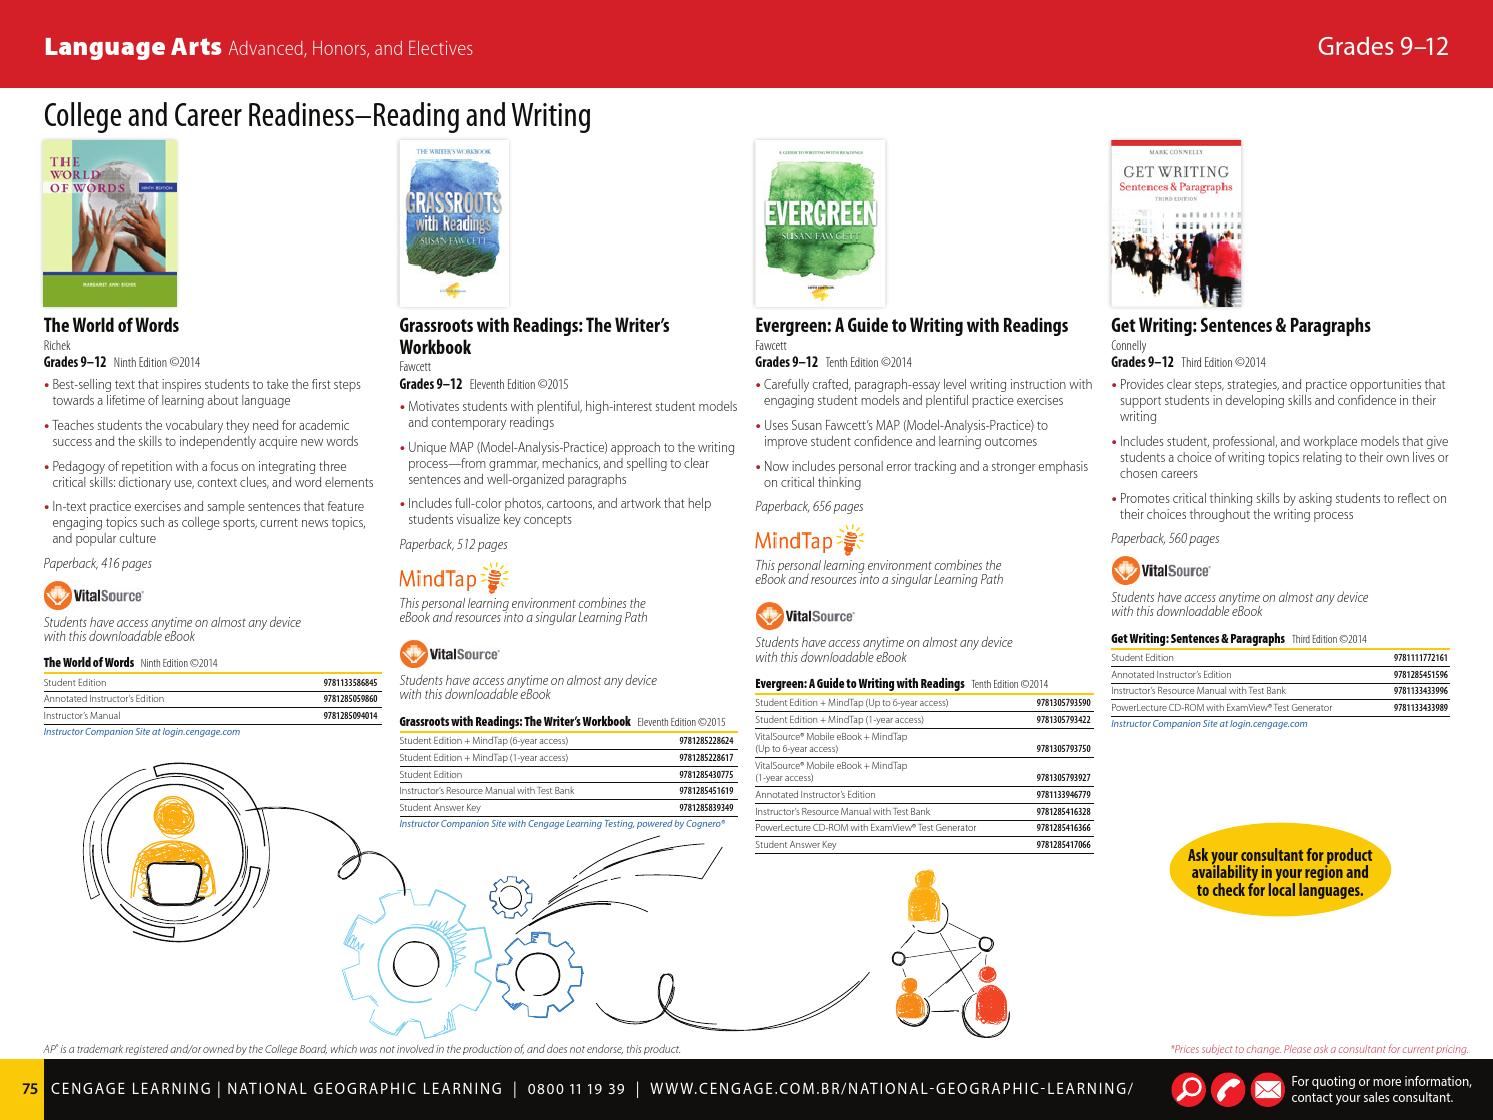 Cengage learning national geographic learning prek 12 catalog 2015 cengage learning national geographic learning prek 12 catalog 2015 16 by cengage brasil issuu fandeluxe Gallery